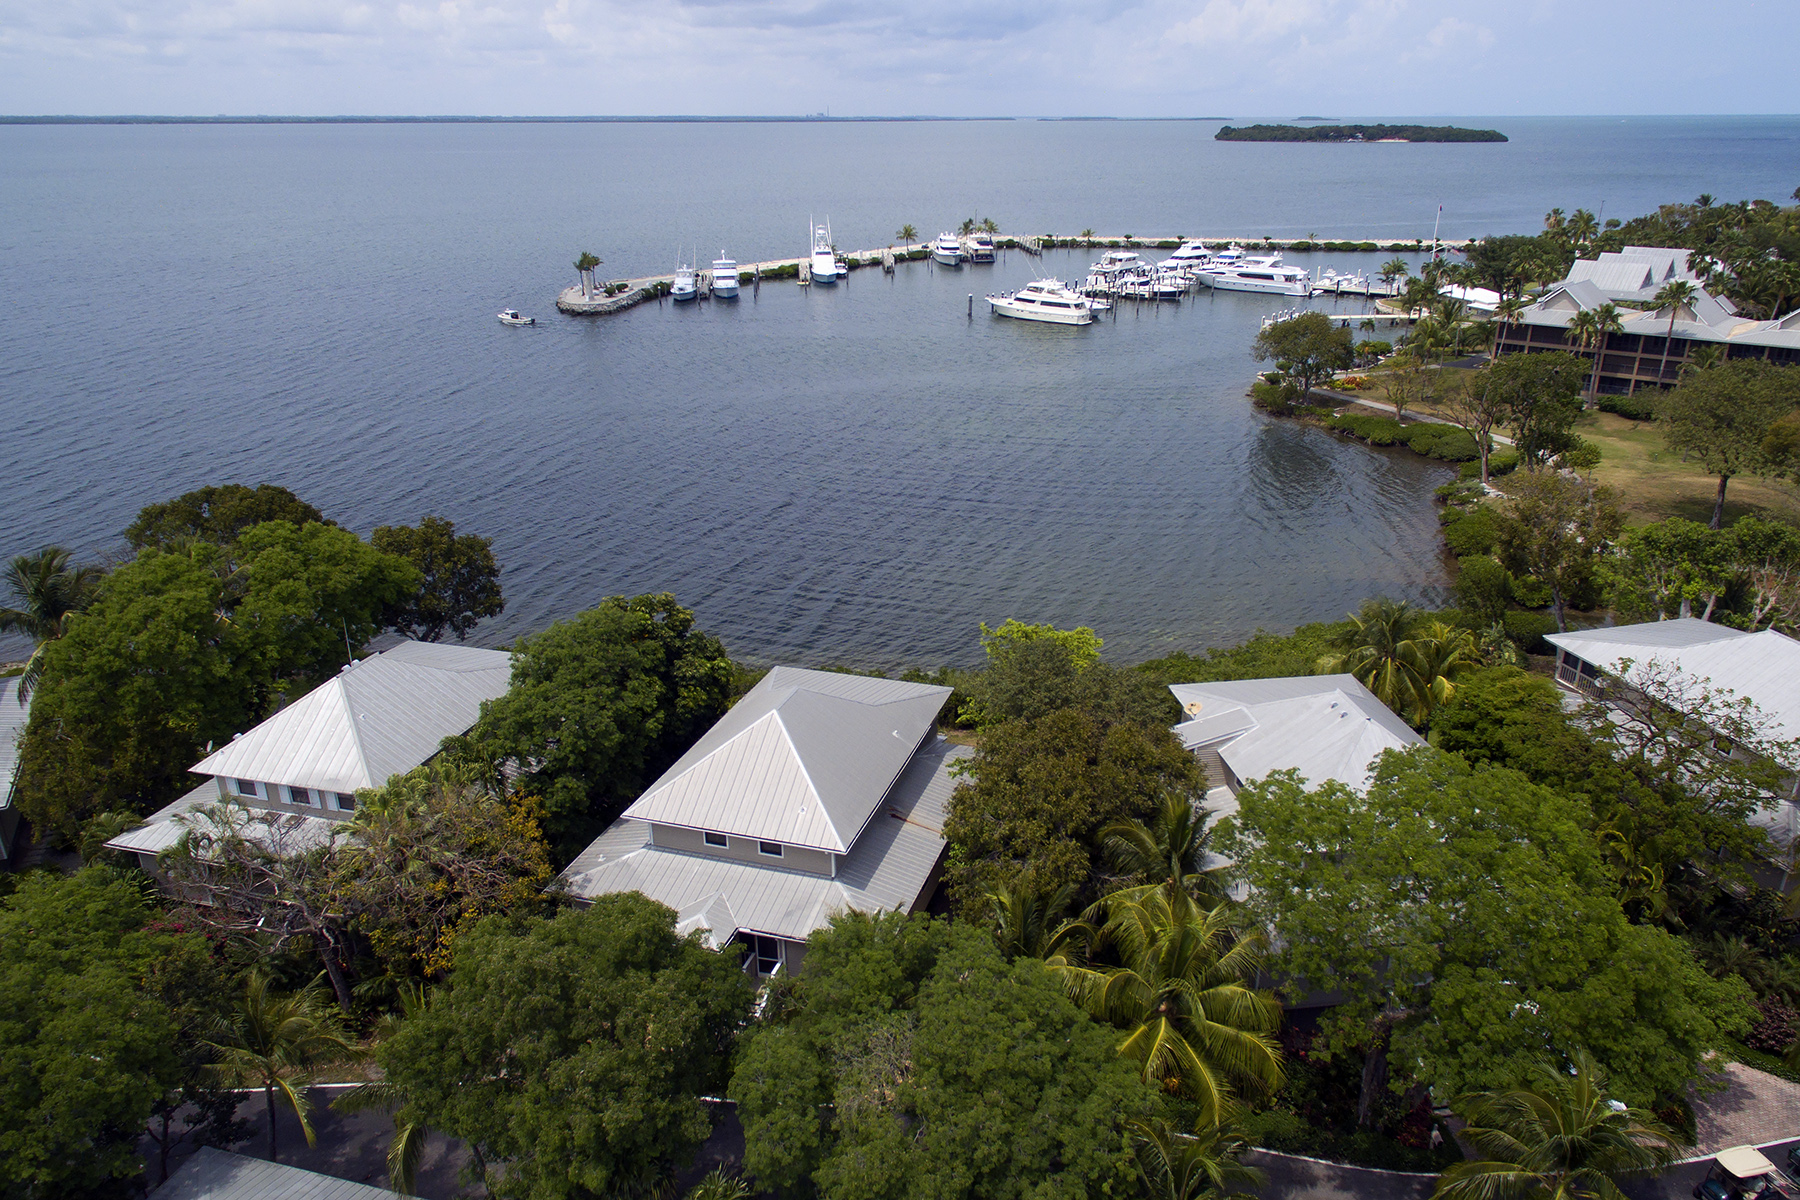 Casa Unifamiliar por un Venta en Bay Front Cottage - Key Largo Anglers Club 26 Island Drive Key Largo, Florida, 33037 Estados Unidos